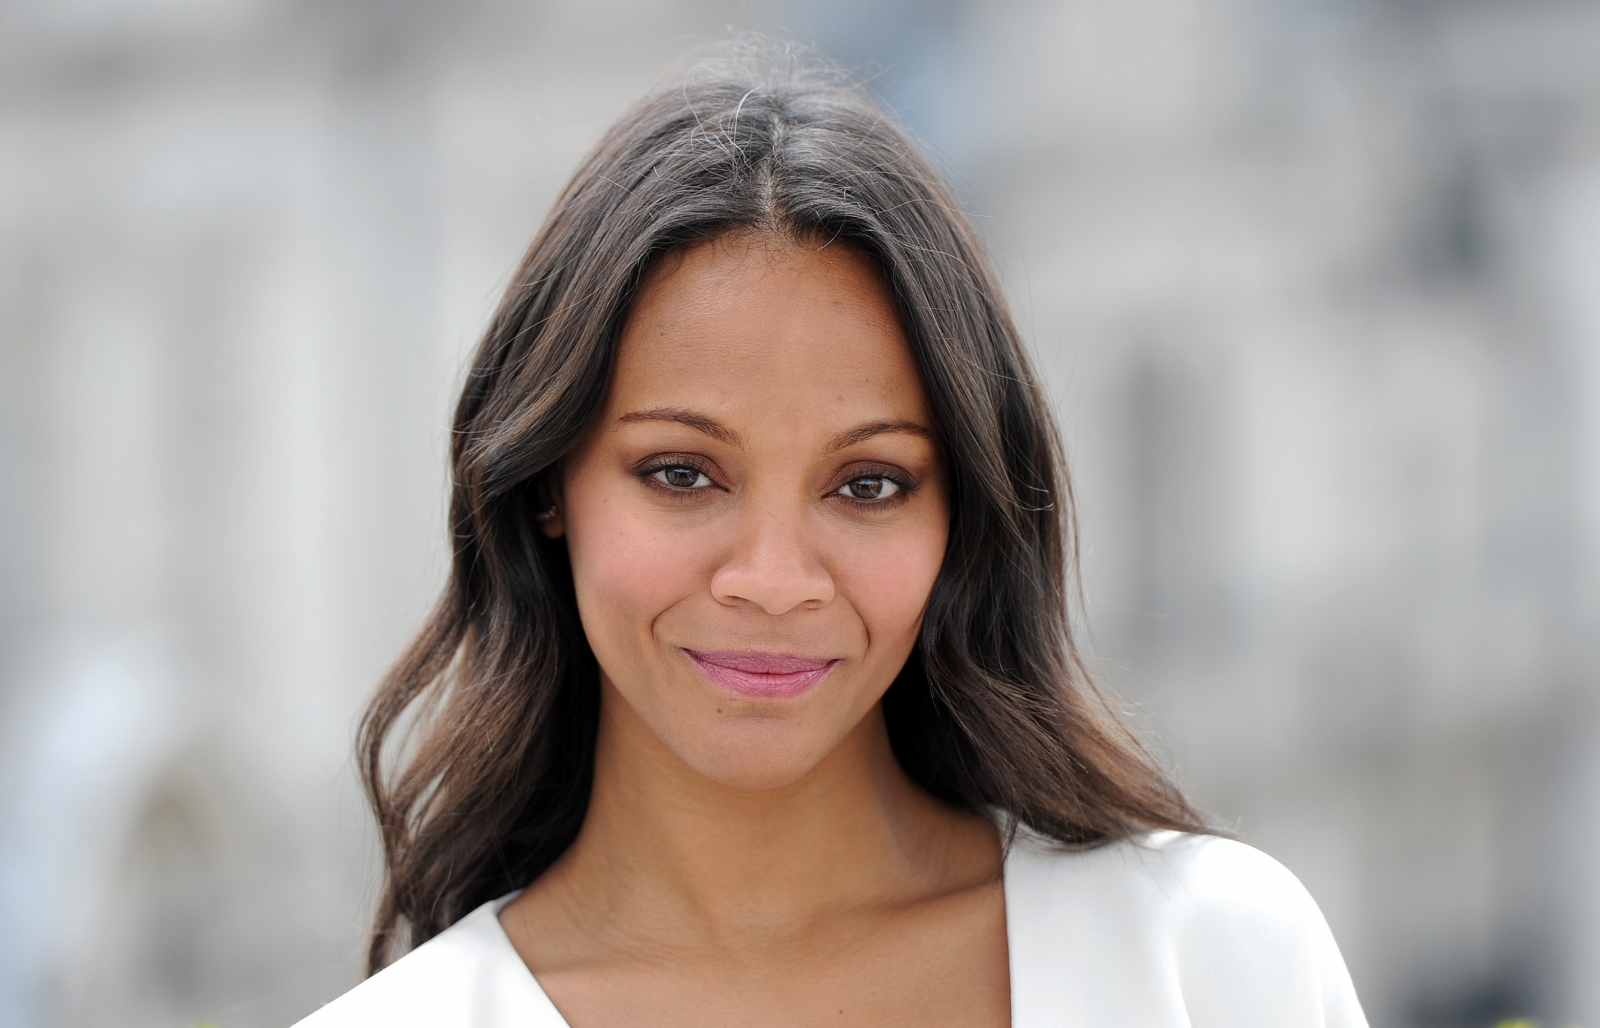 Zoe Saldana 38th birthday: Star Trek, Guardians Of The Galaxy and more ...